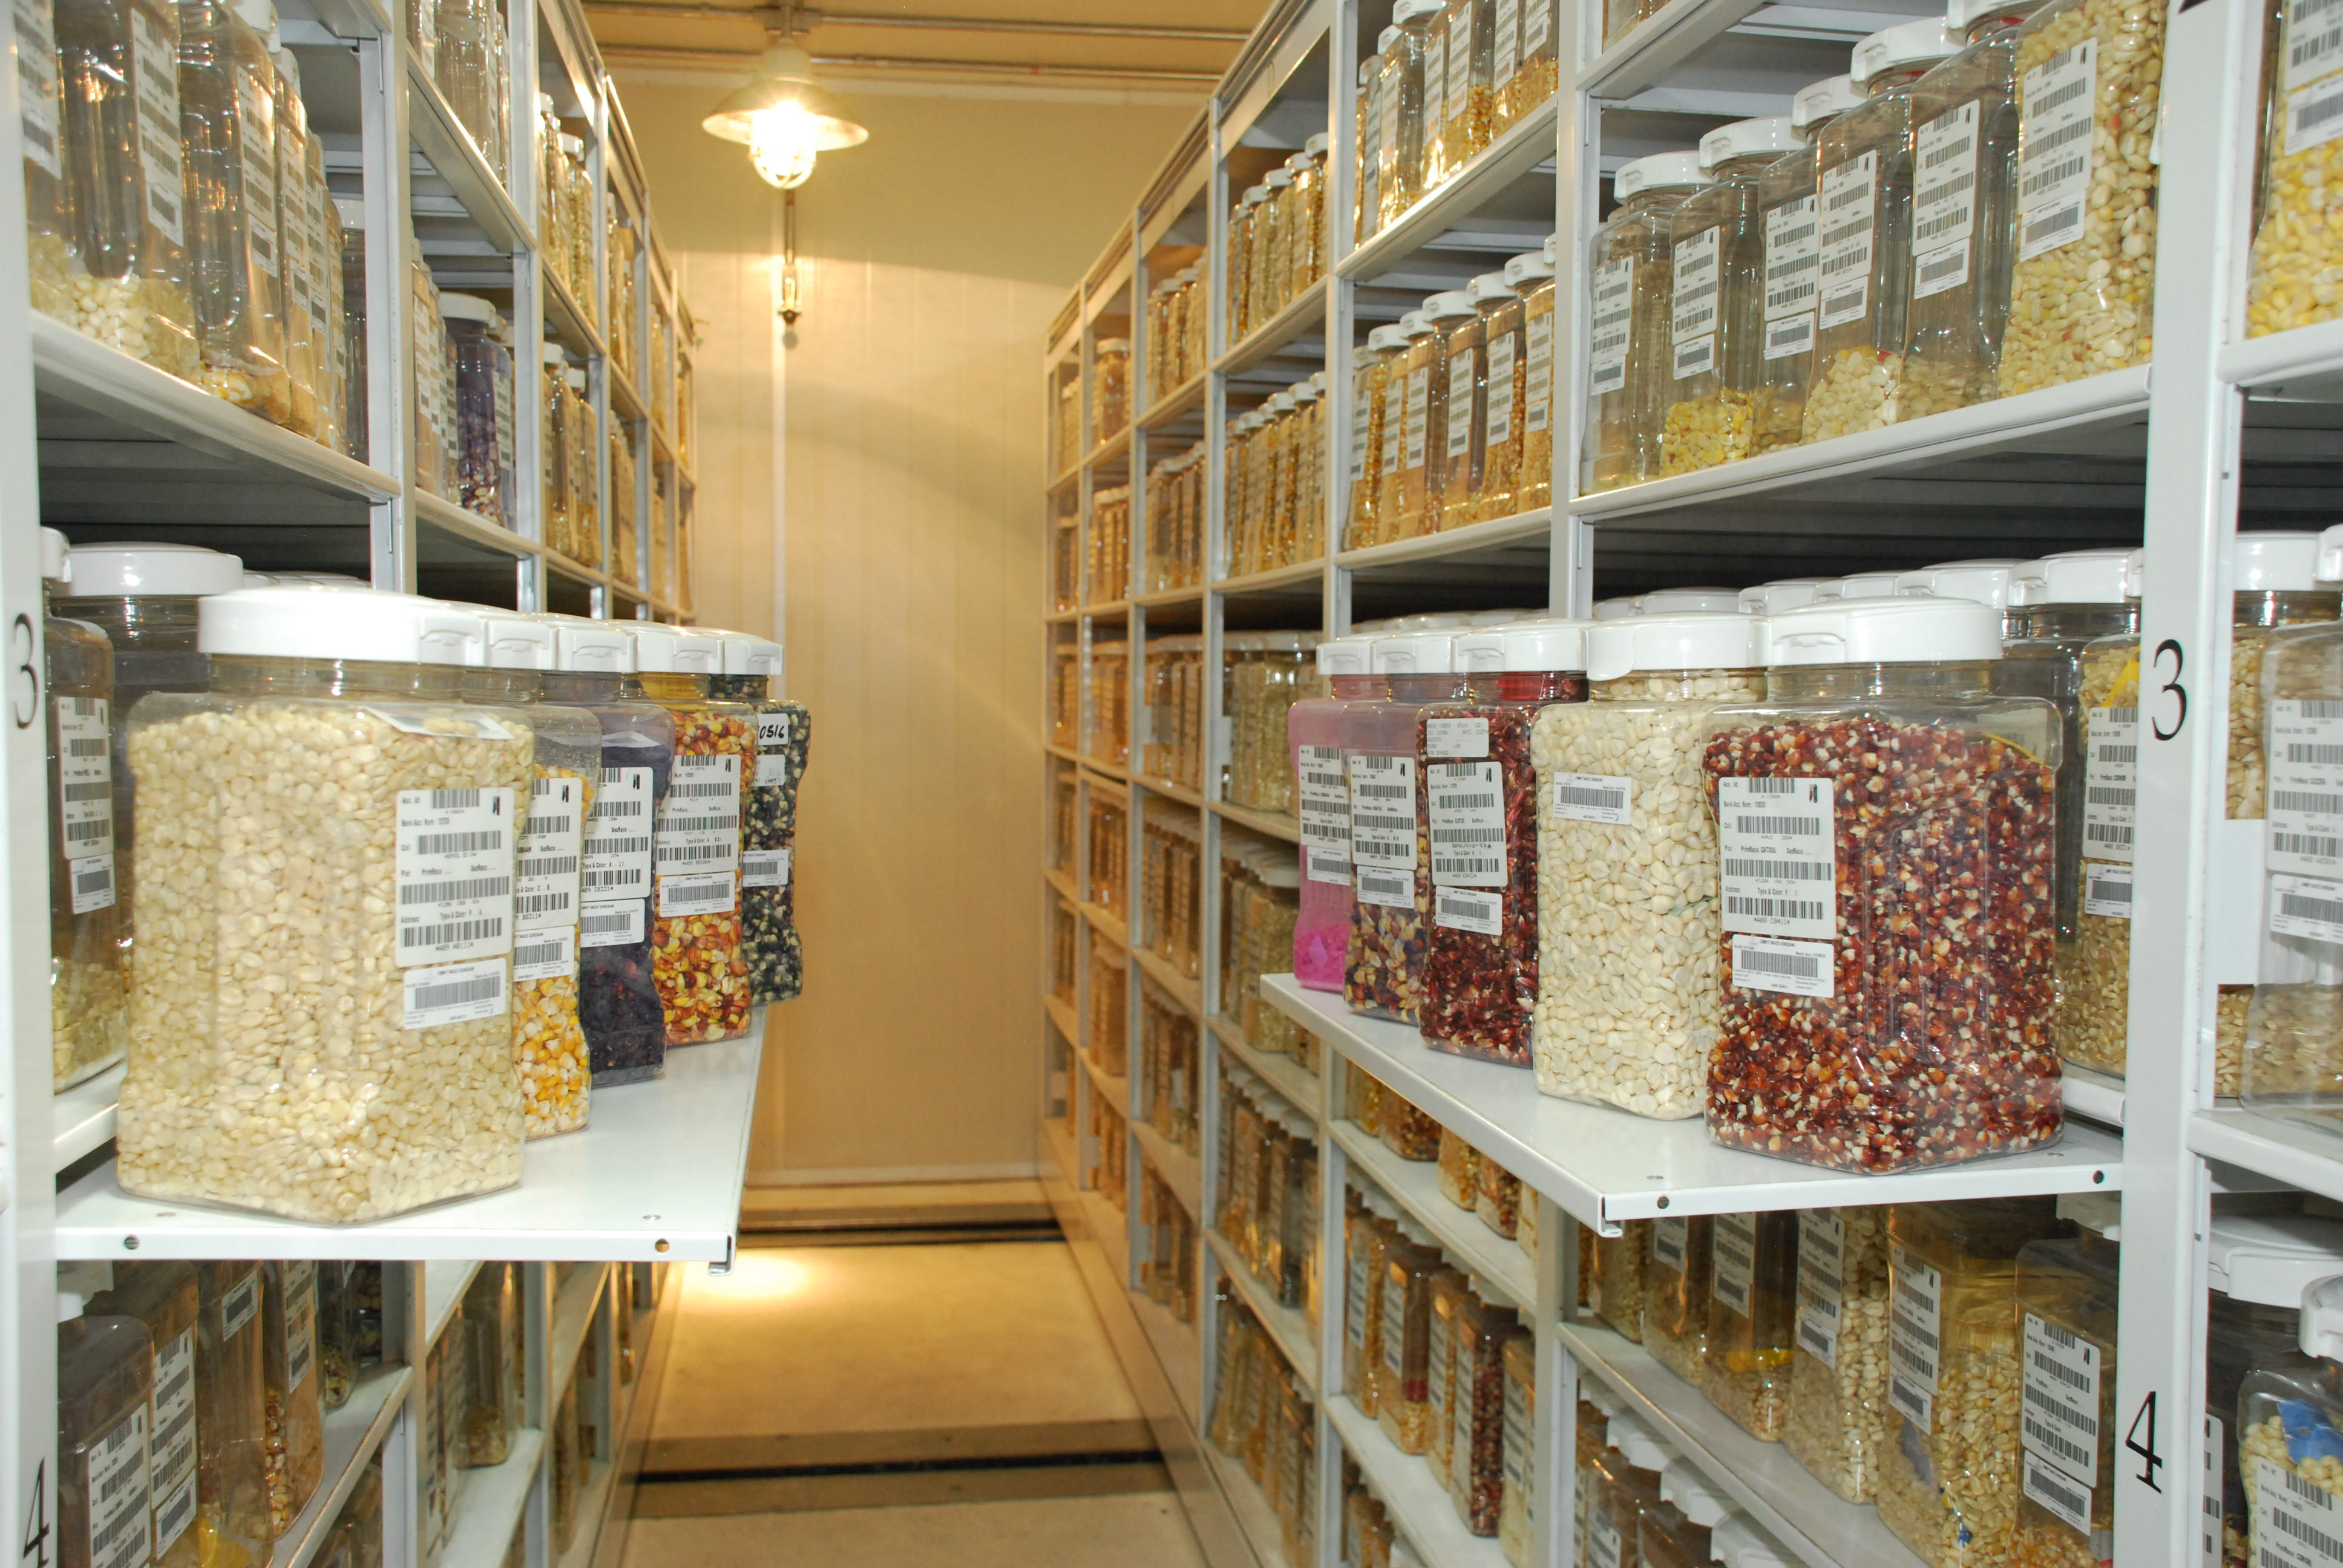 Some of the thousands of samples that make up the maize collection in the Wellhausen-Anderson Plant Genetic Resources Center at CIMMYT's global headquarters in Texcoco, Mexico. (Photo: Xochiquetzal Fonseca/CIMMYT)